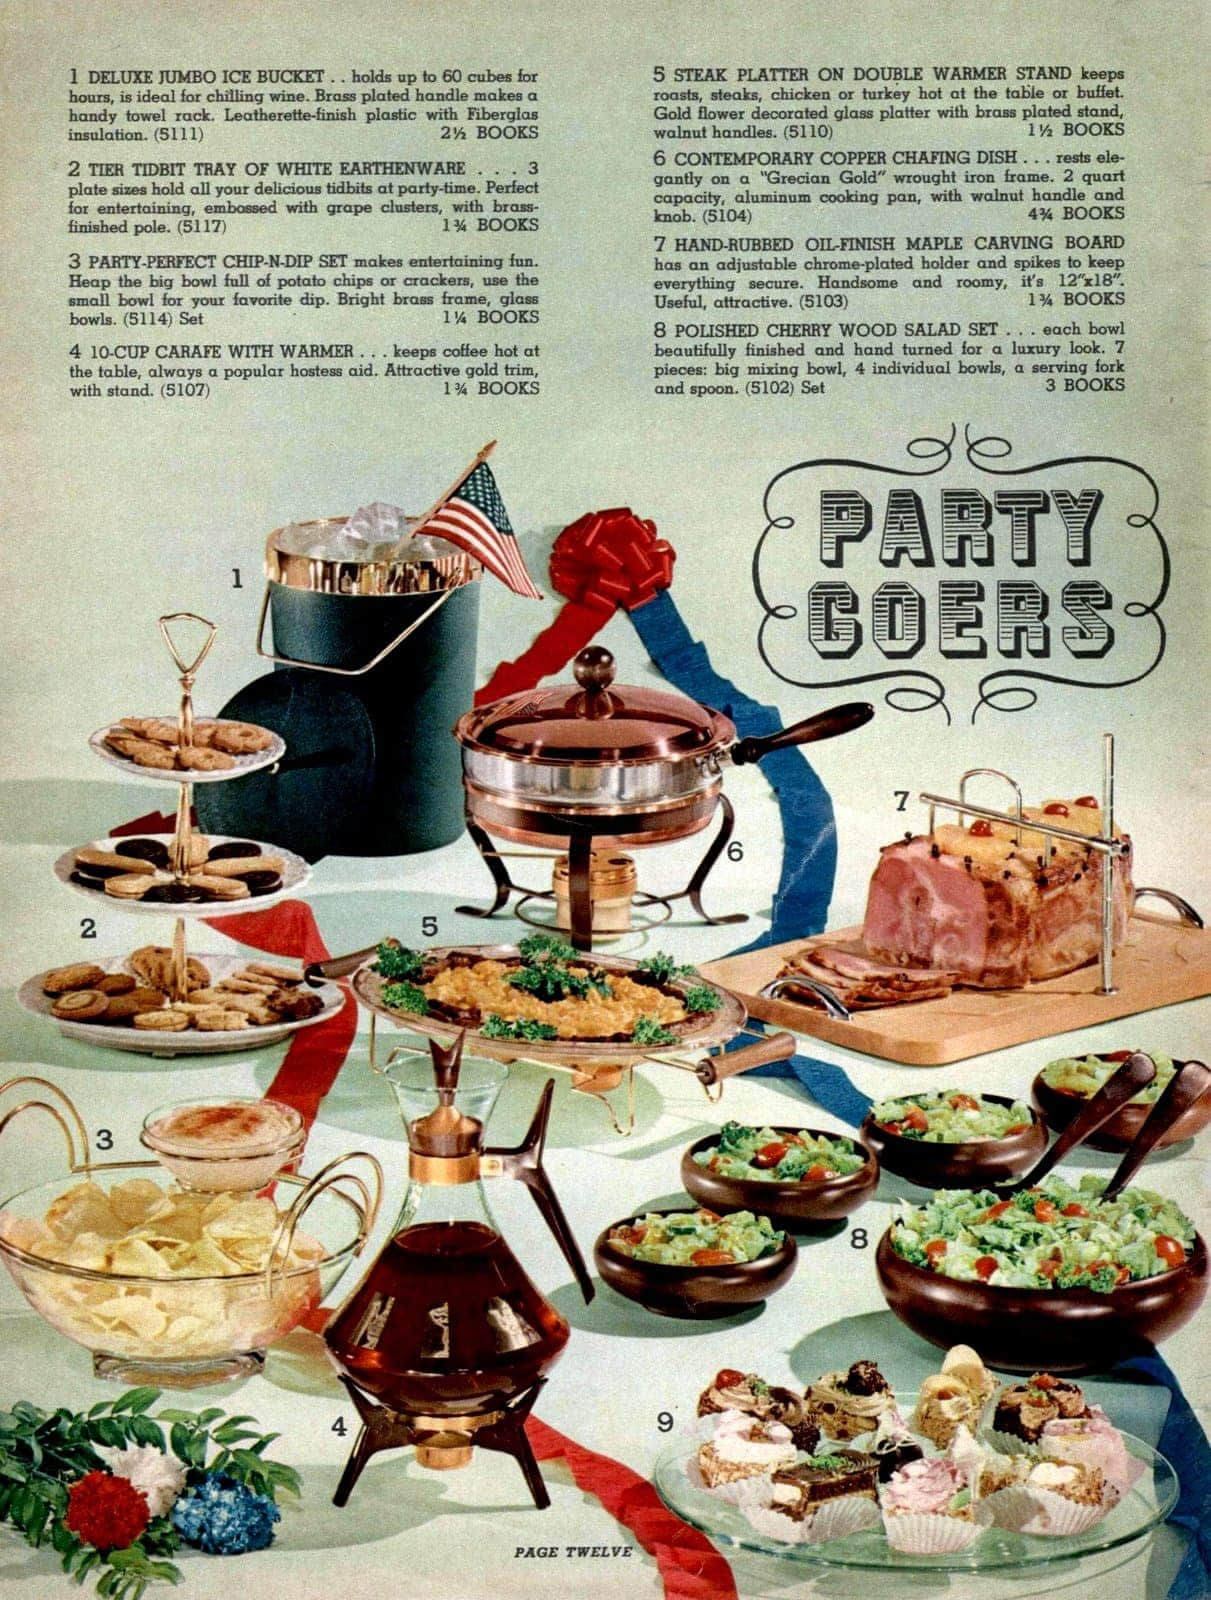 Have a retro party! Serving plates, salad bowls, platters, chafing dish, chip n dip set, tidbit tray